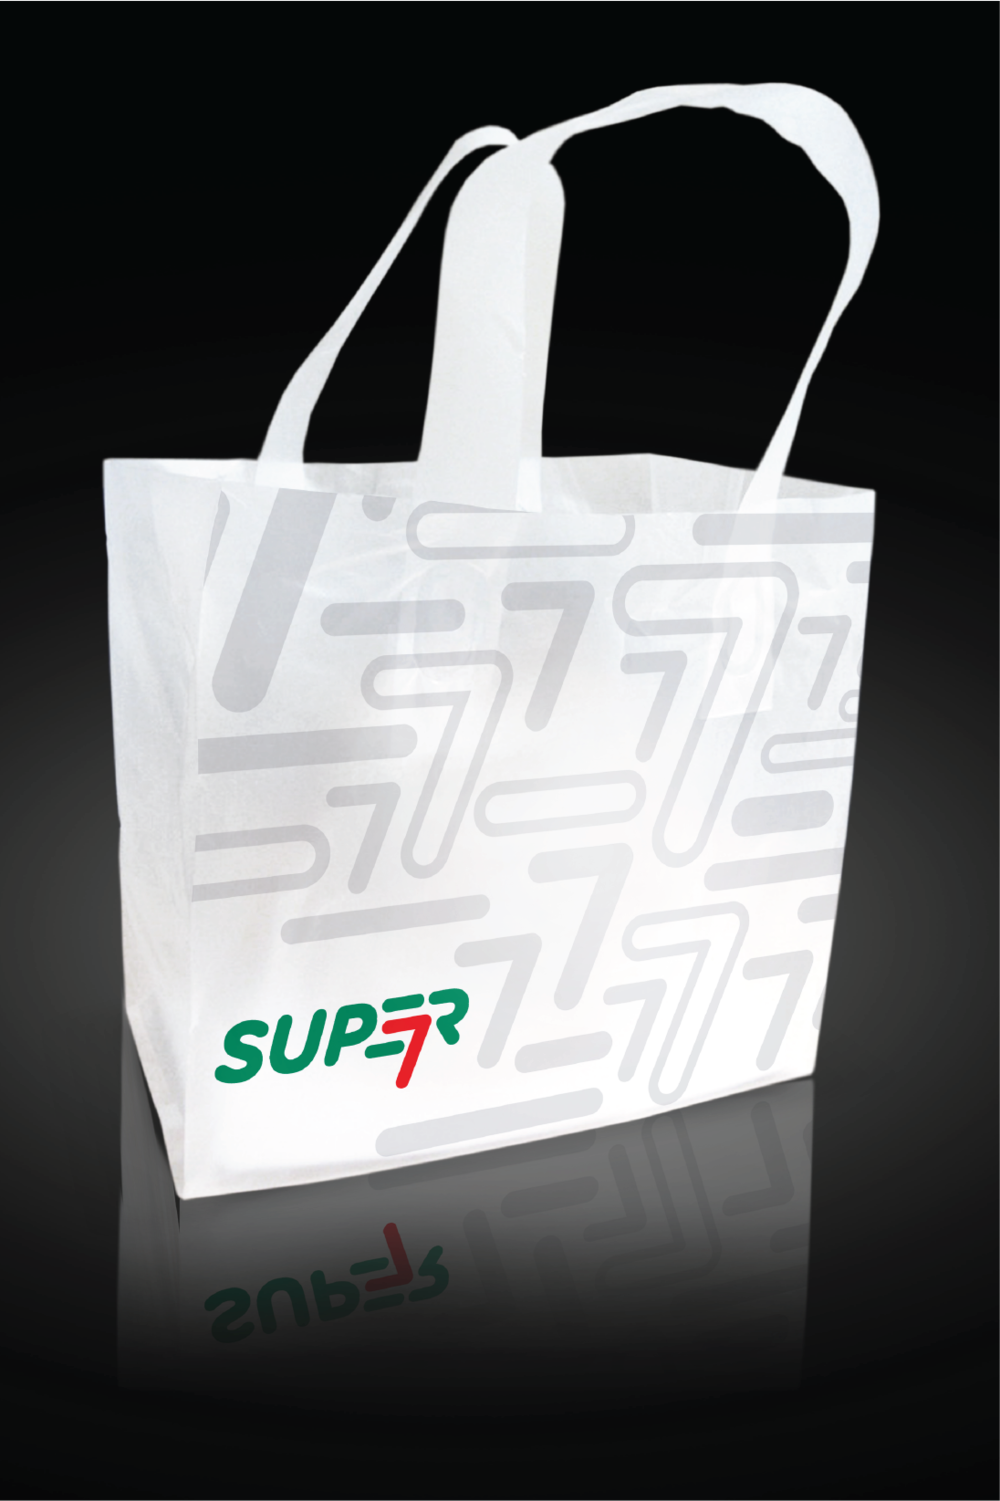 Super7_website-05.png